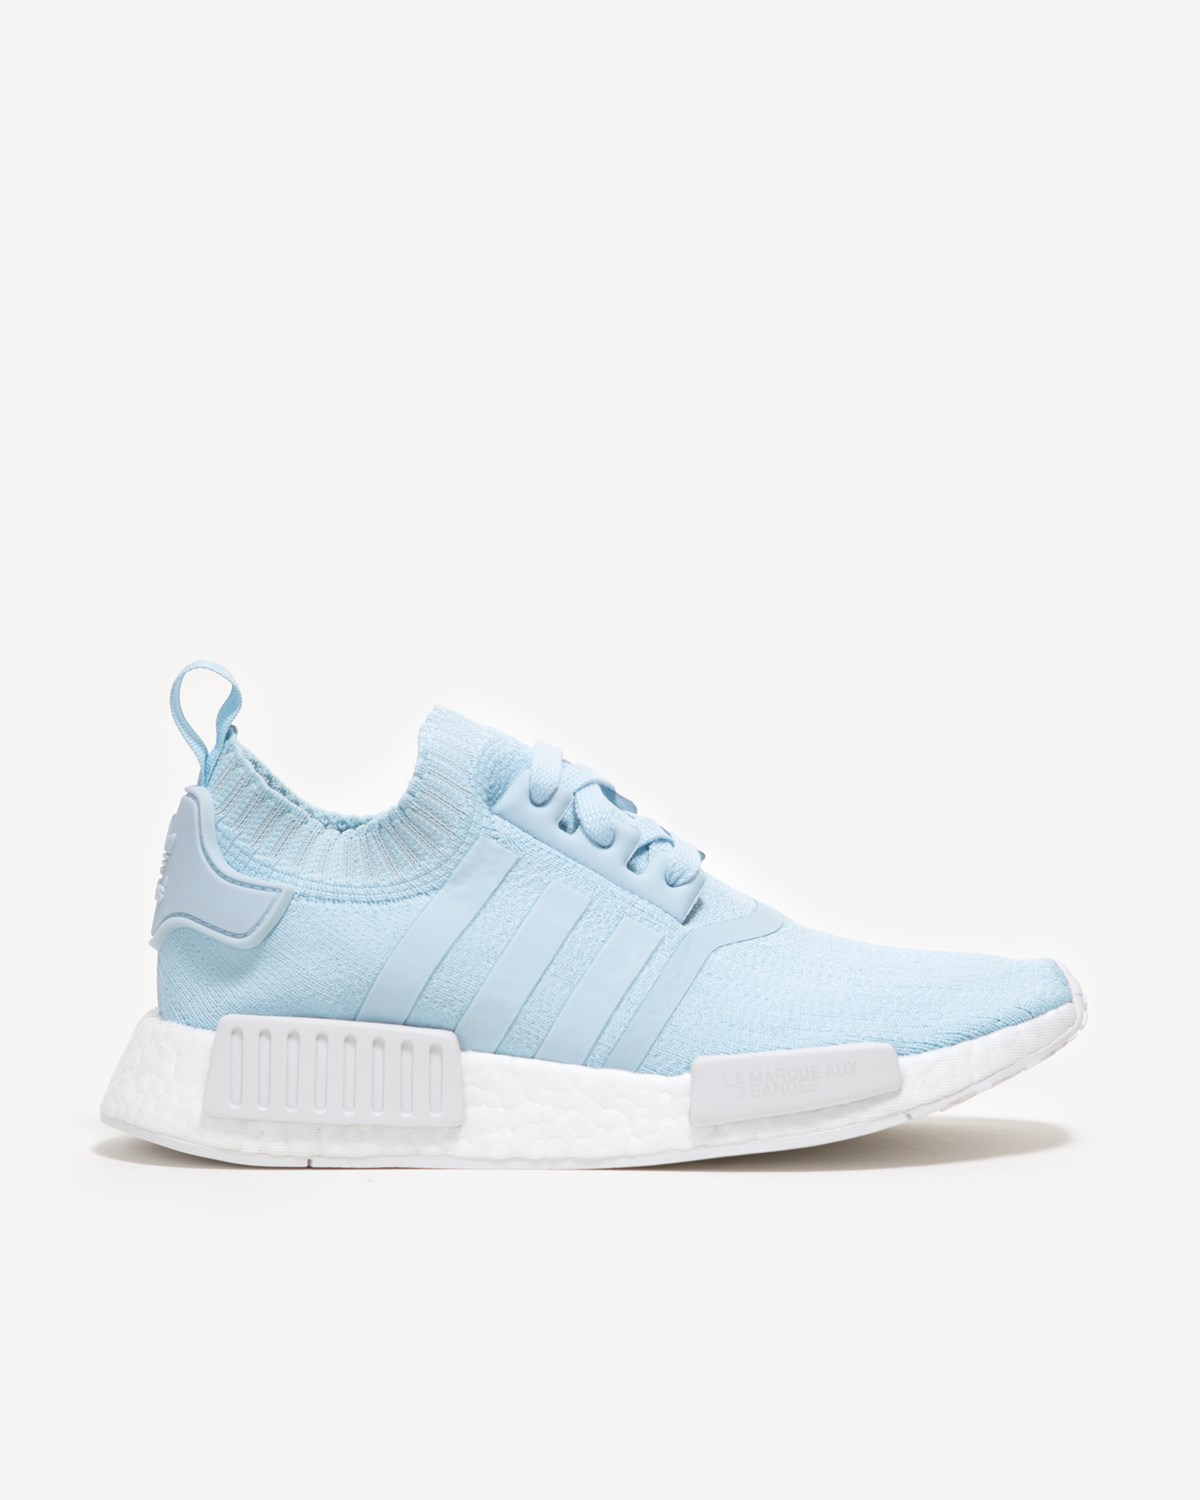 adidas nmd us uk 4 5 6 7 8 9 10 pink grey womens r1 office